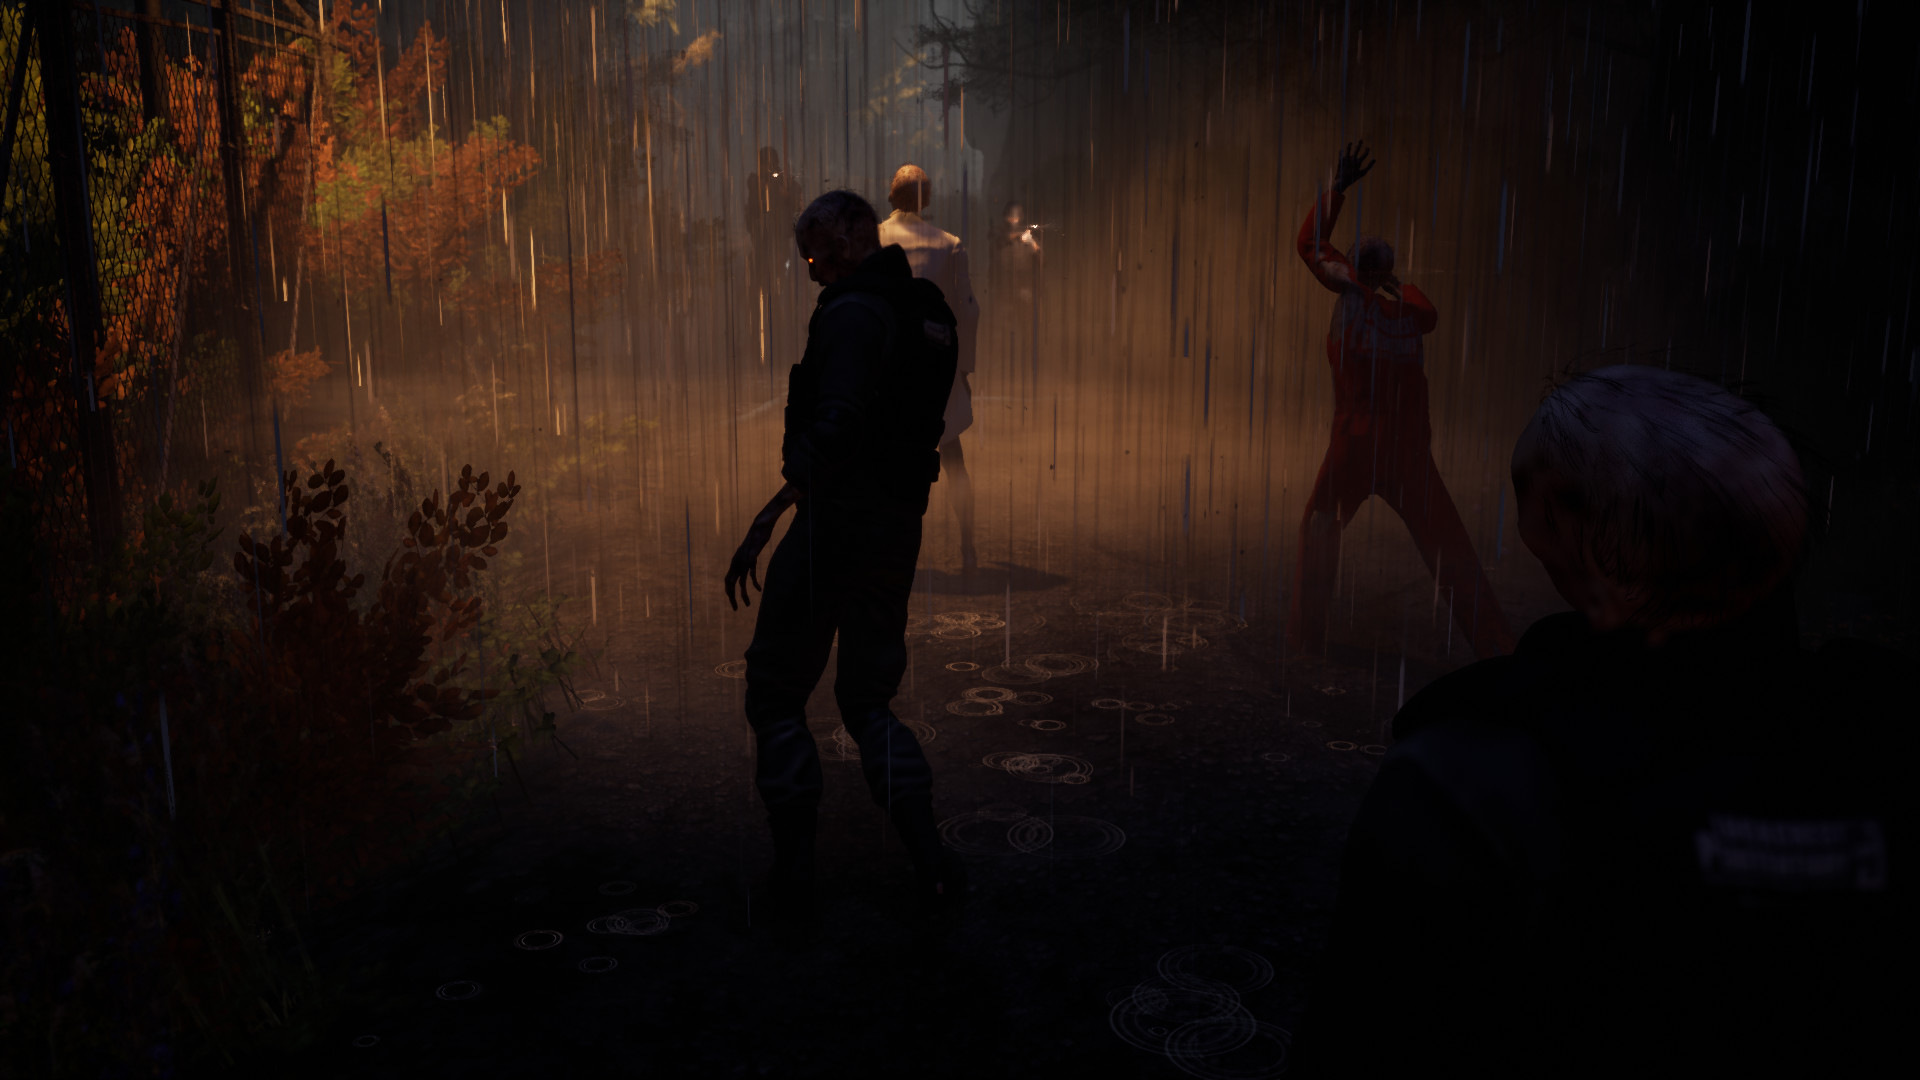 JoE Zombies walking at night in a forest on a trail barely lit be light poles